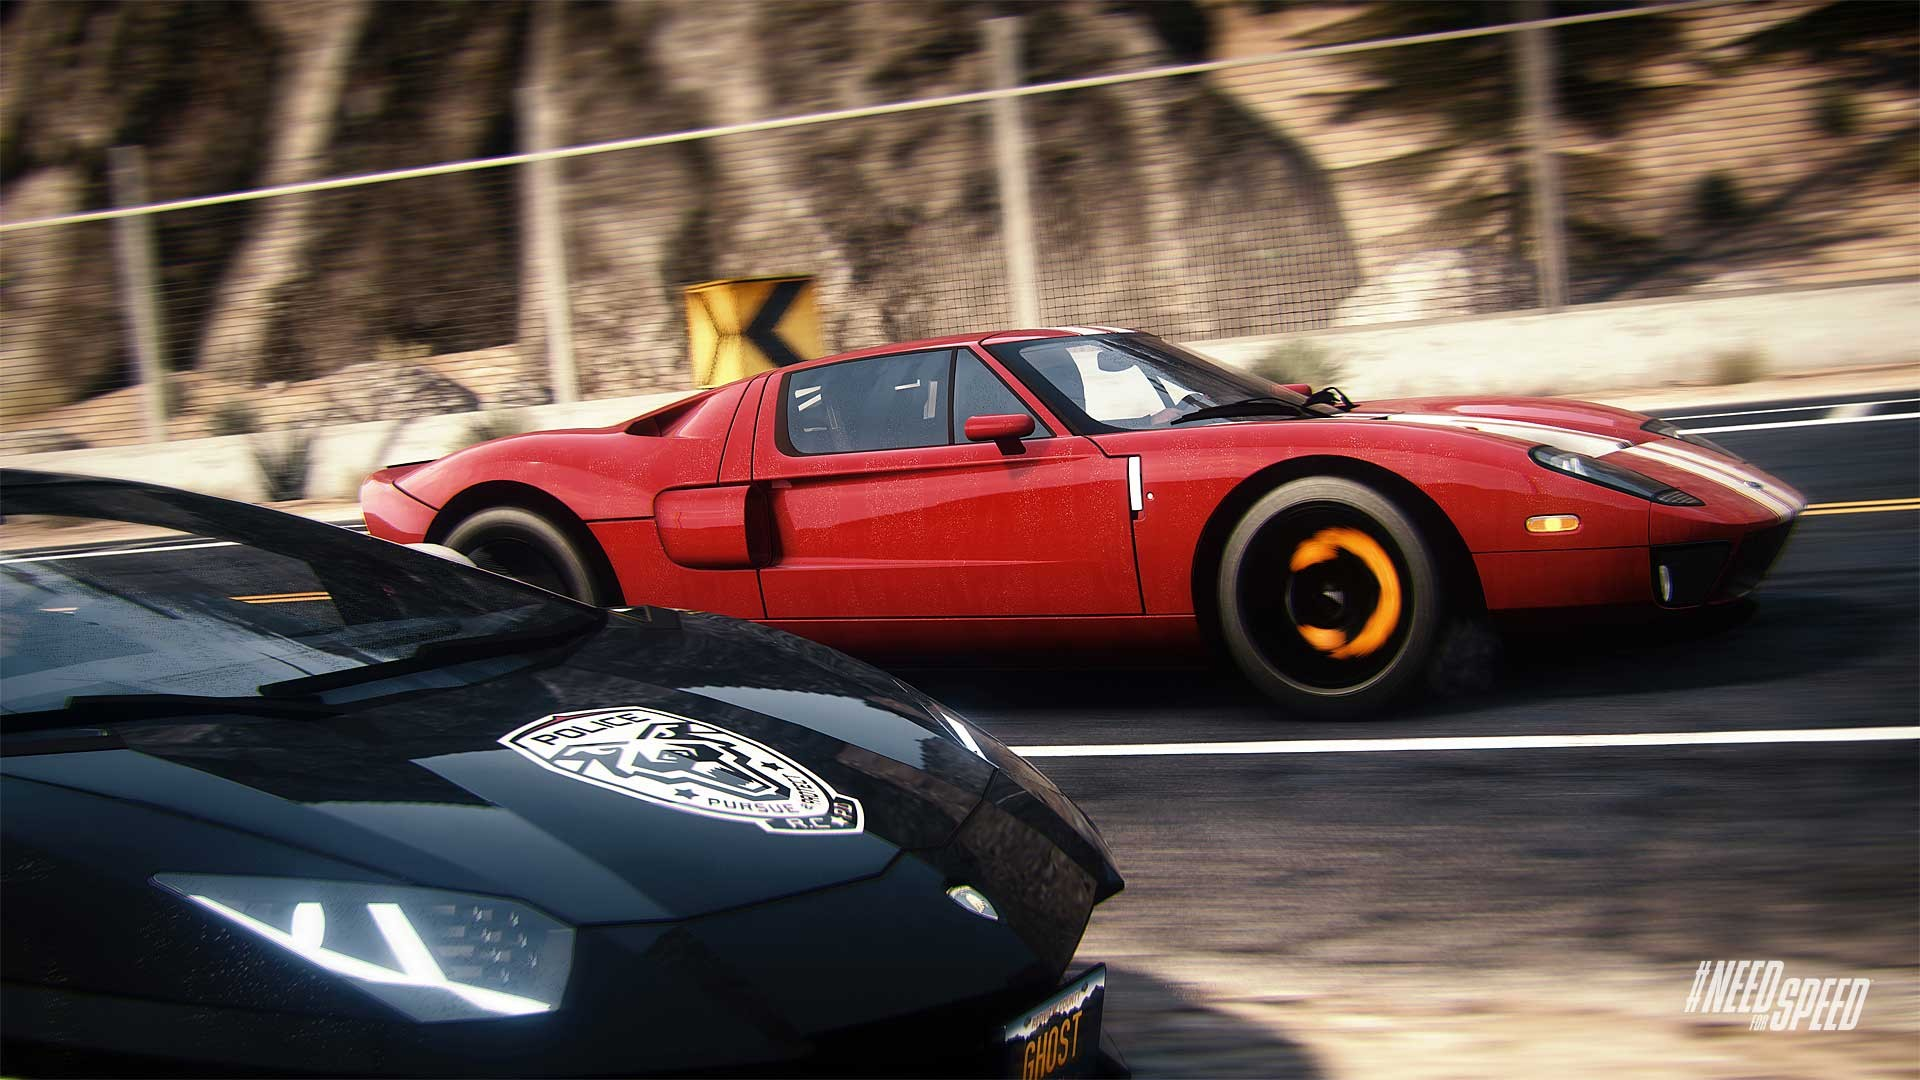 La saga Need for Speed fête ses 20 ans